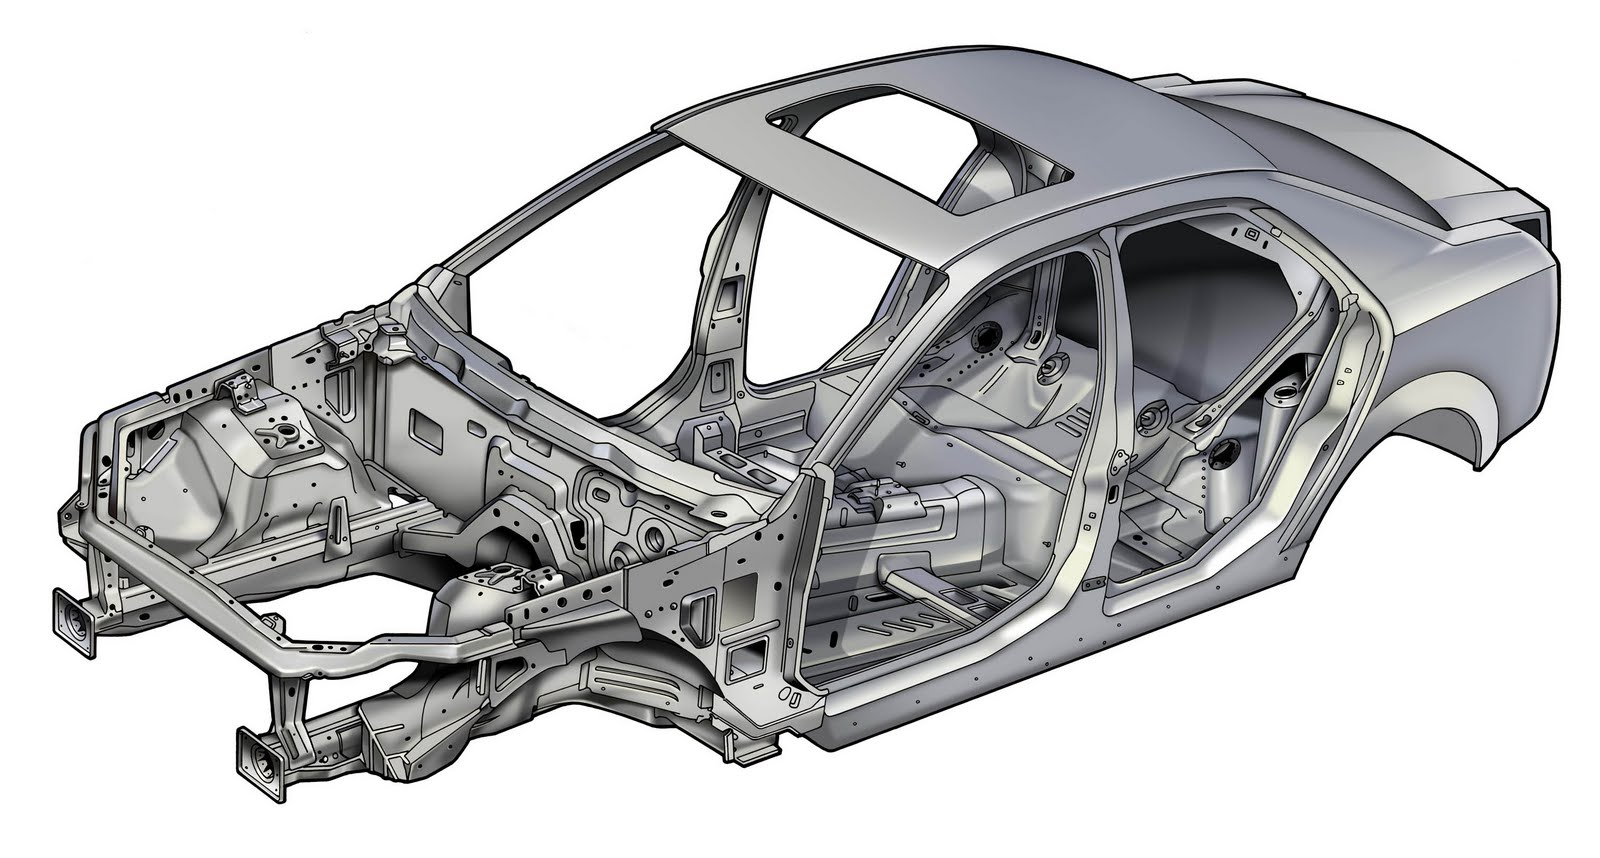 2010 Cadillac Cts Safety Cage And Body Structure Boron